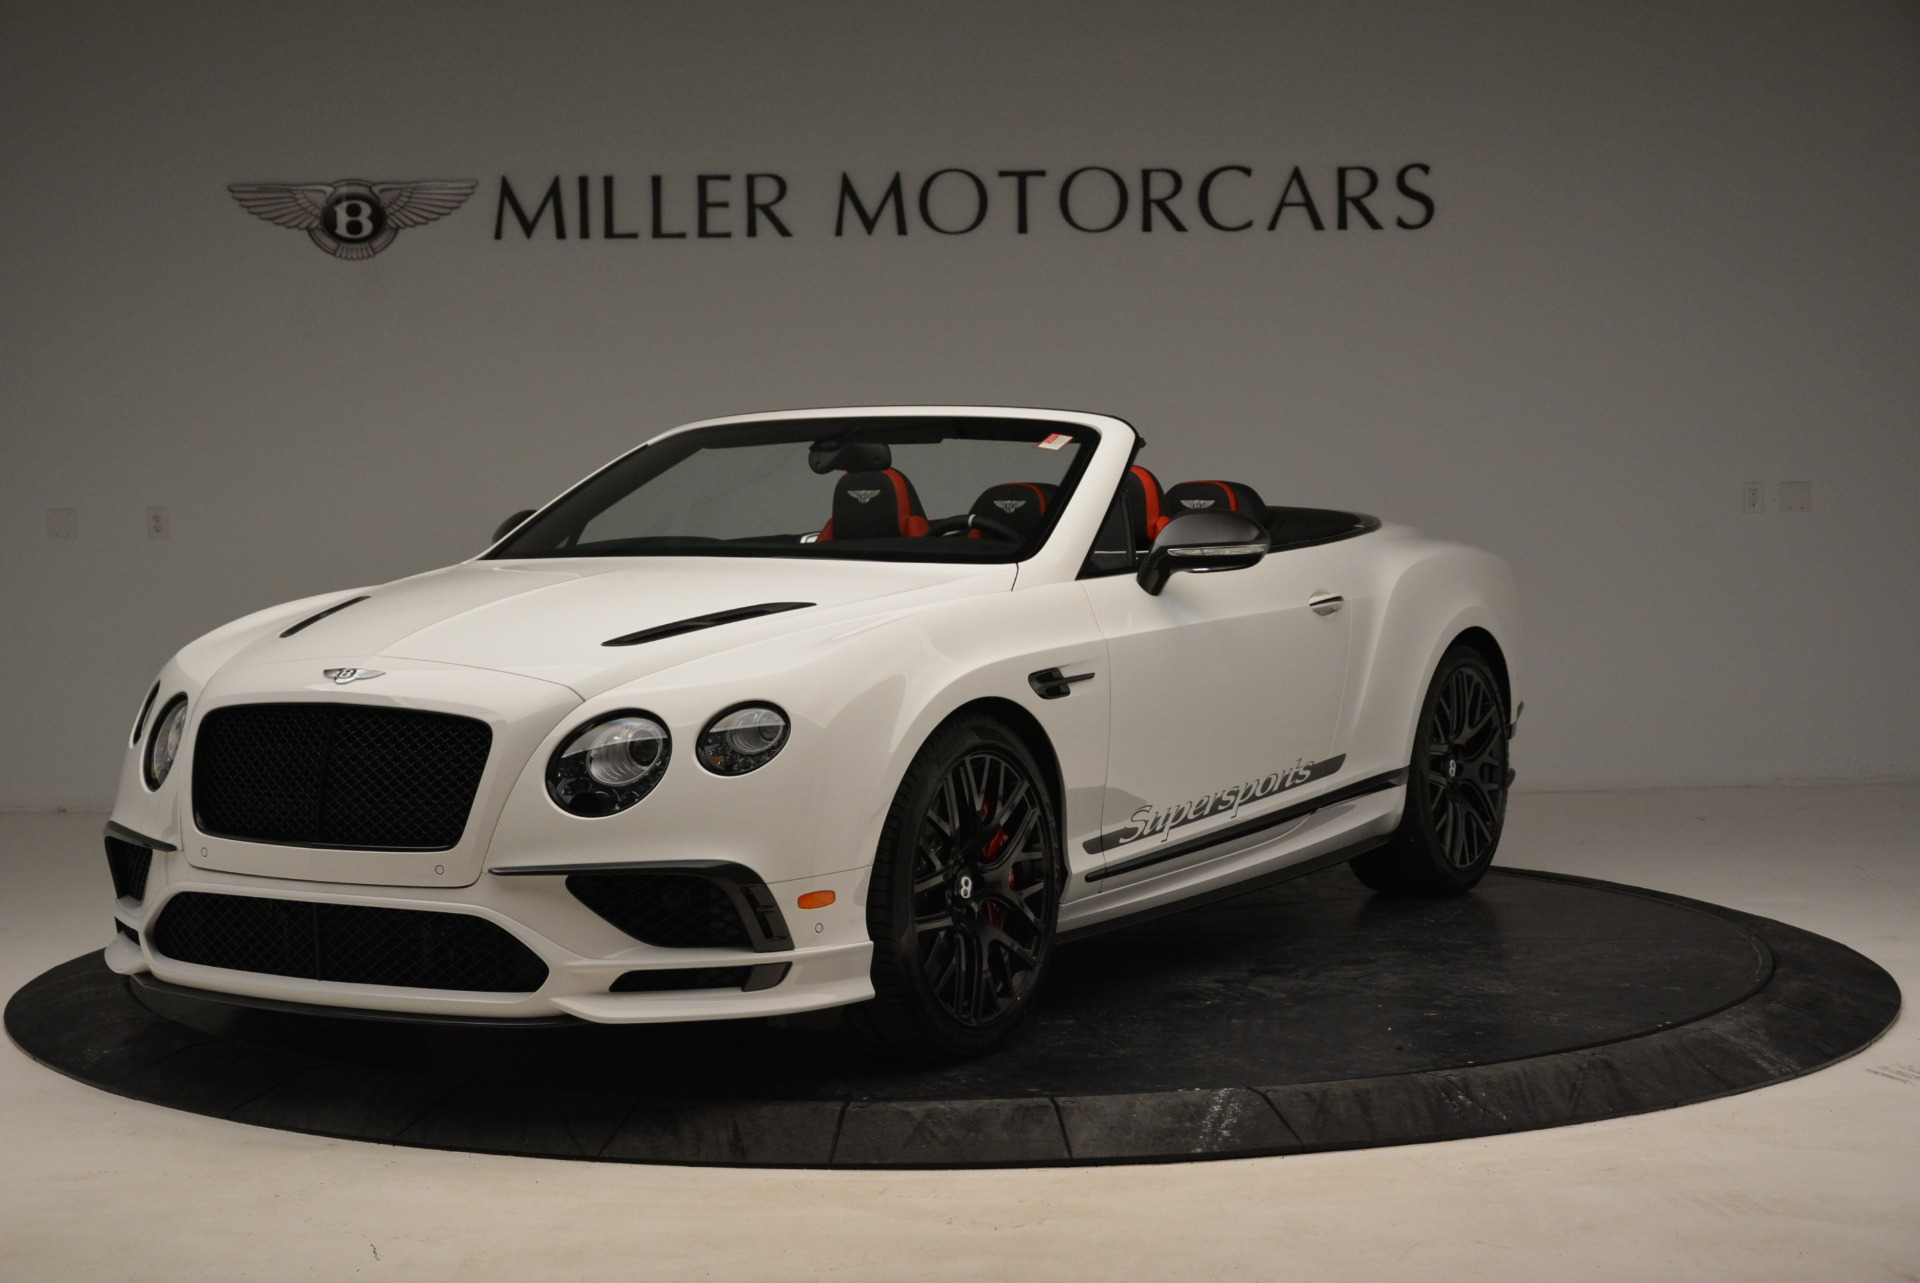 Used 2018 Bentley Continental GTC Supersports Convertible for sale $219,900 at McLaren Greenwich in Greenwich CT 06830 1